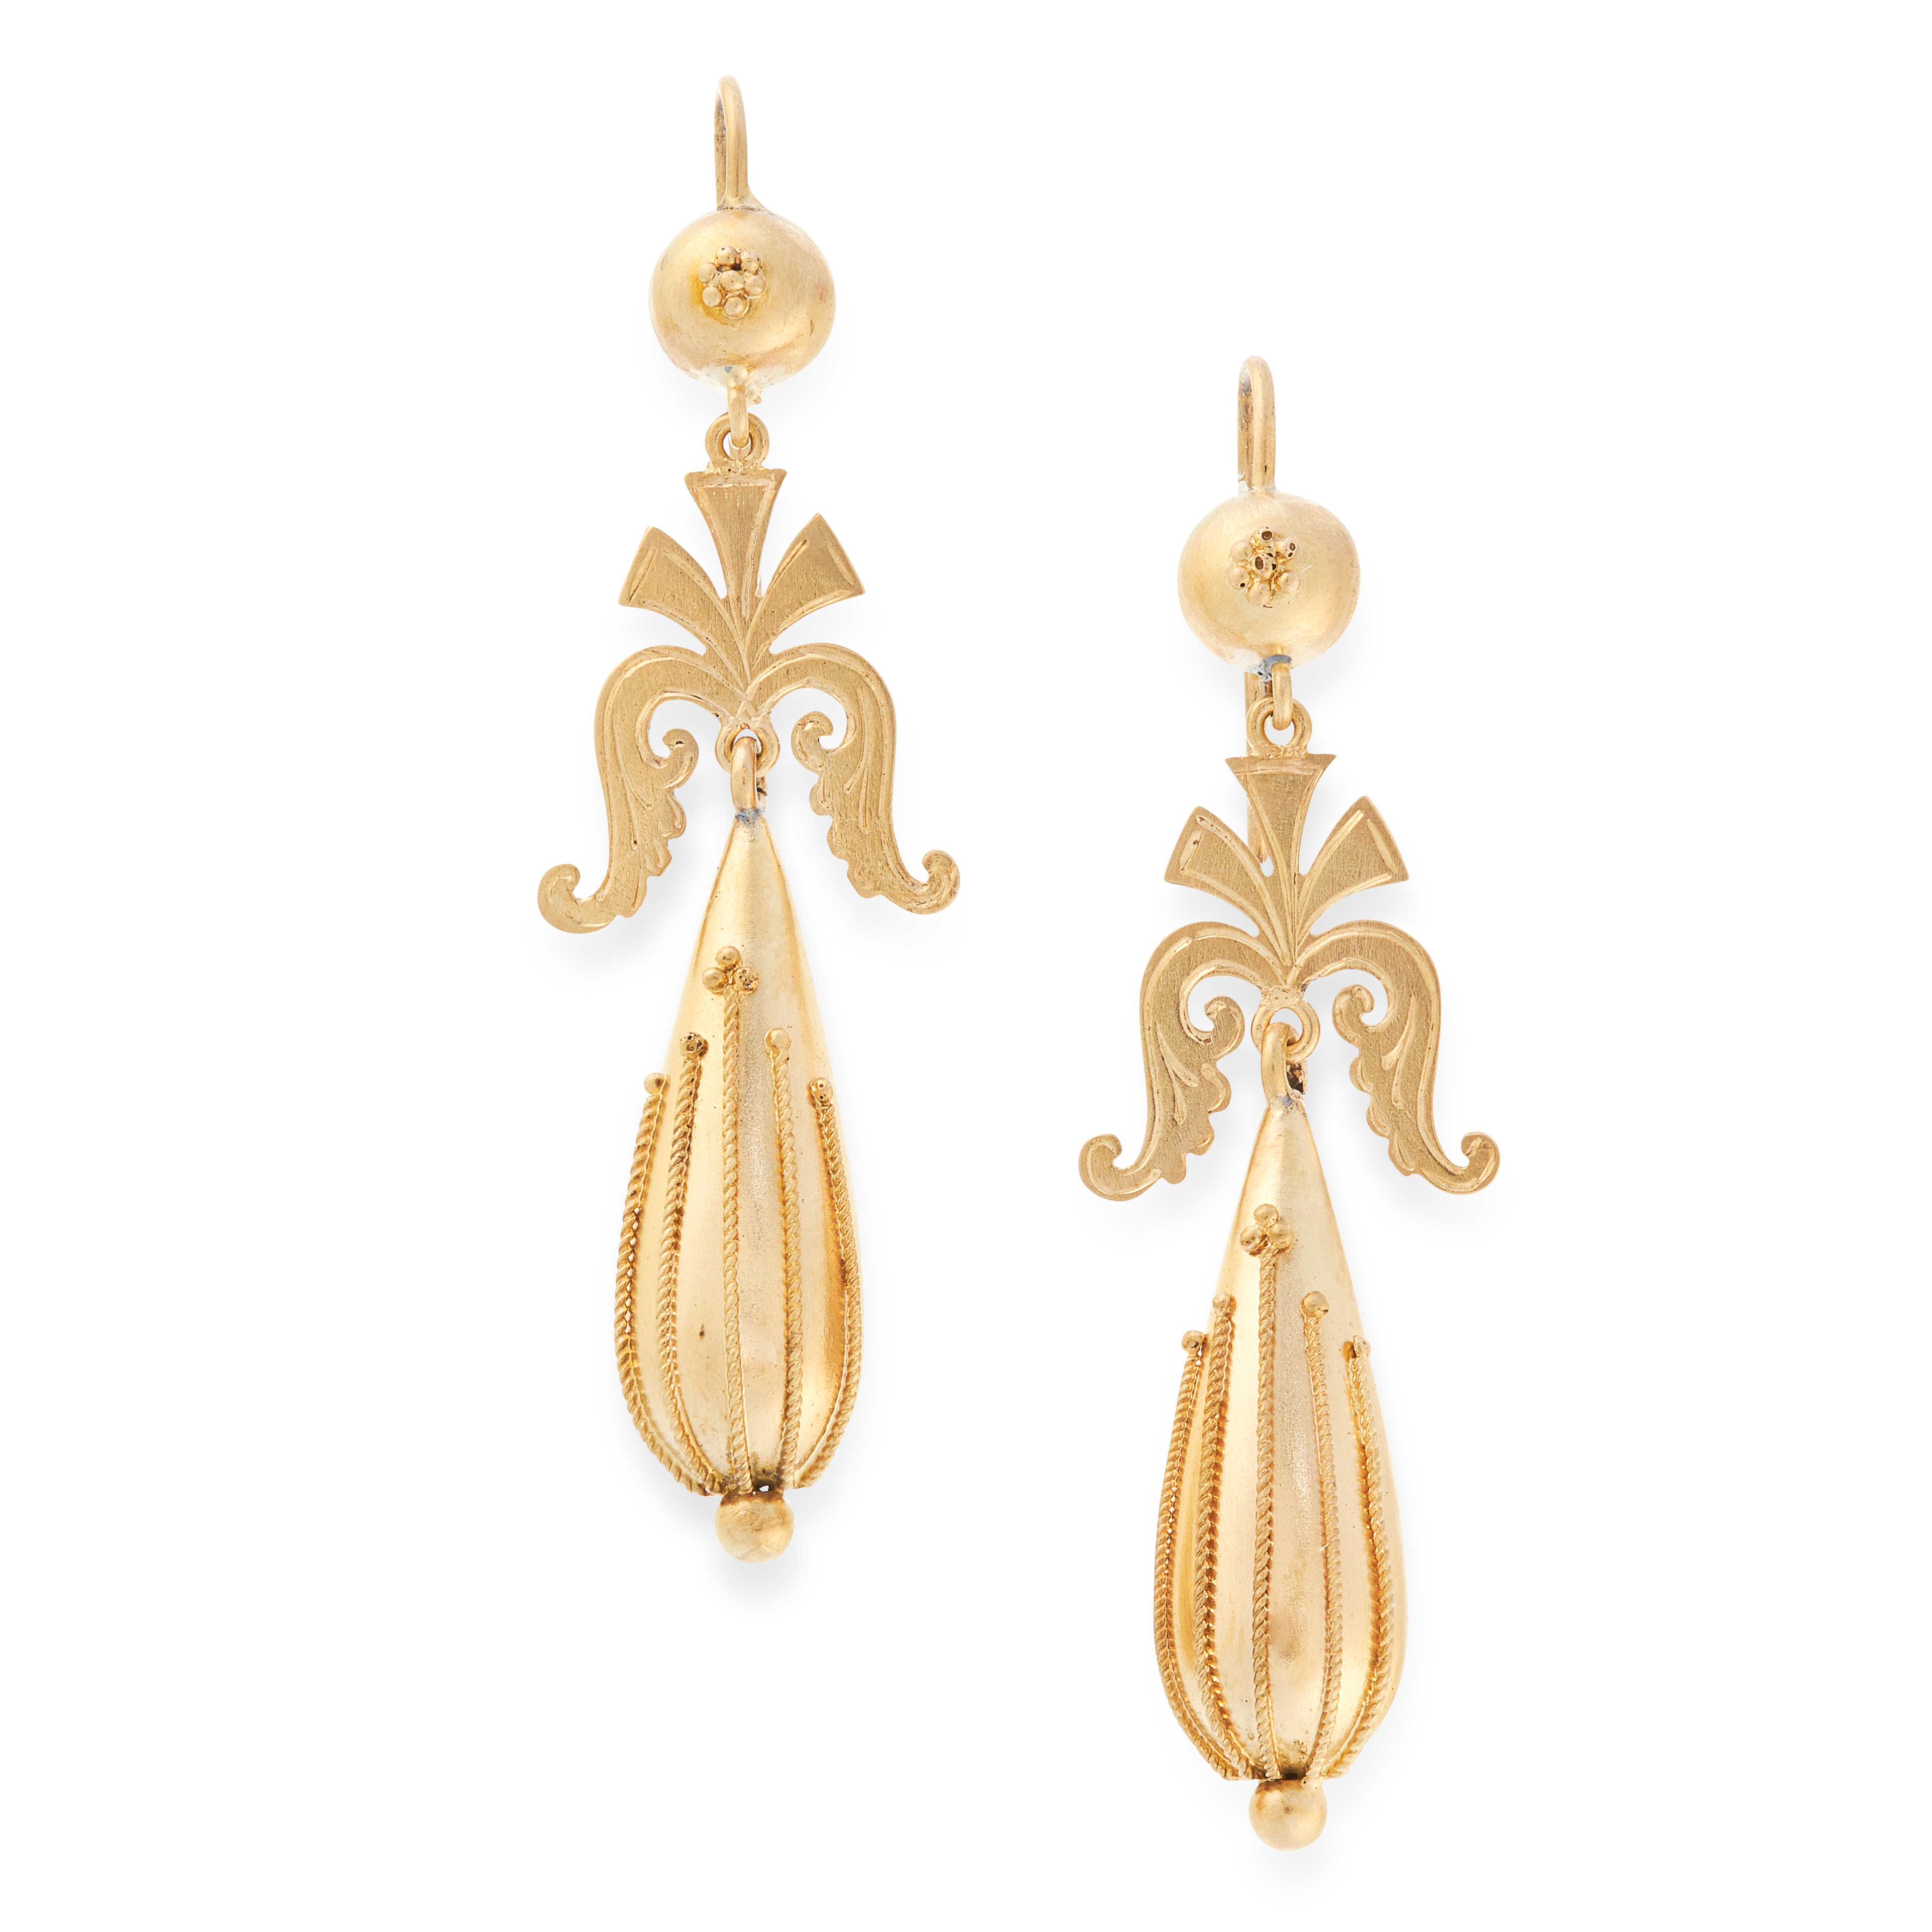 A PAIR OF ANTIQUE DROP EARRINGS, 19TH CENTURY in yellow gold, the articulated body of each formed of